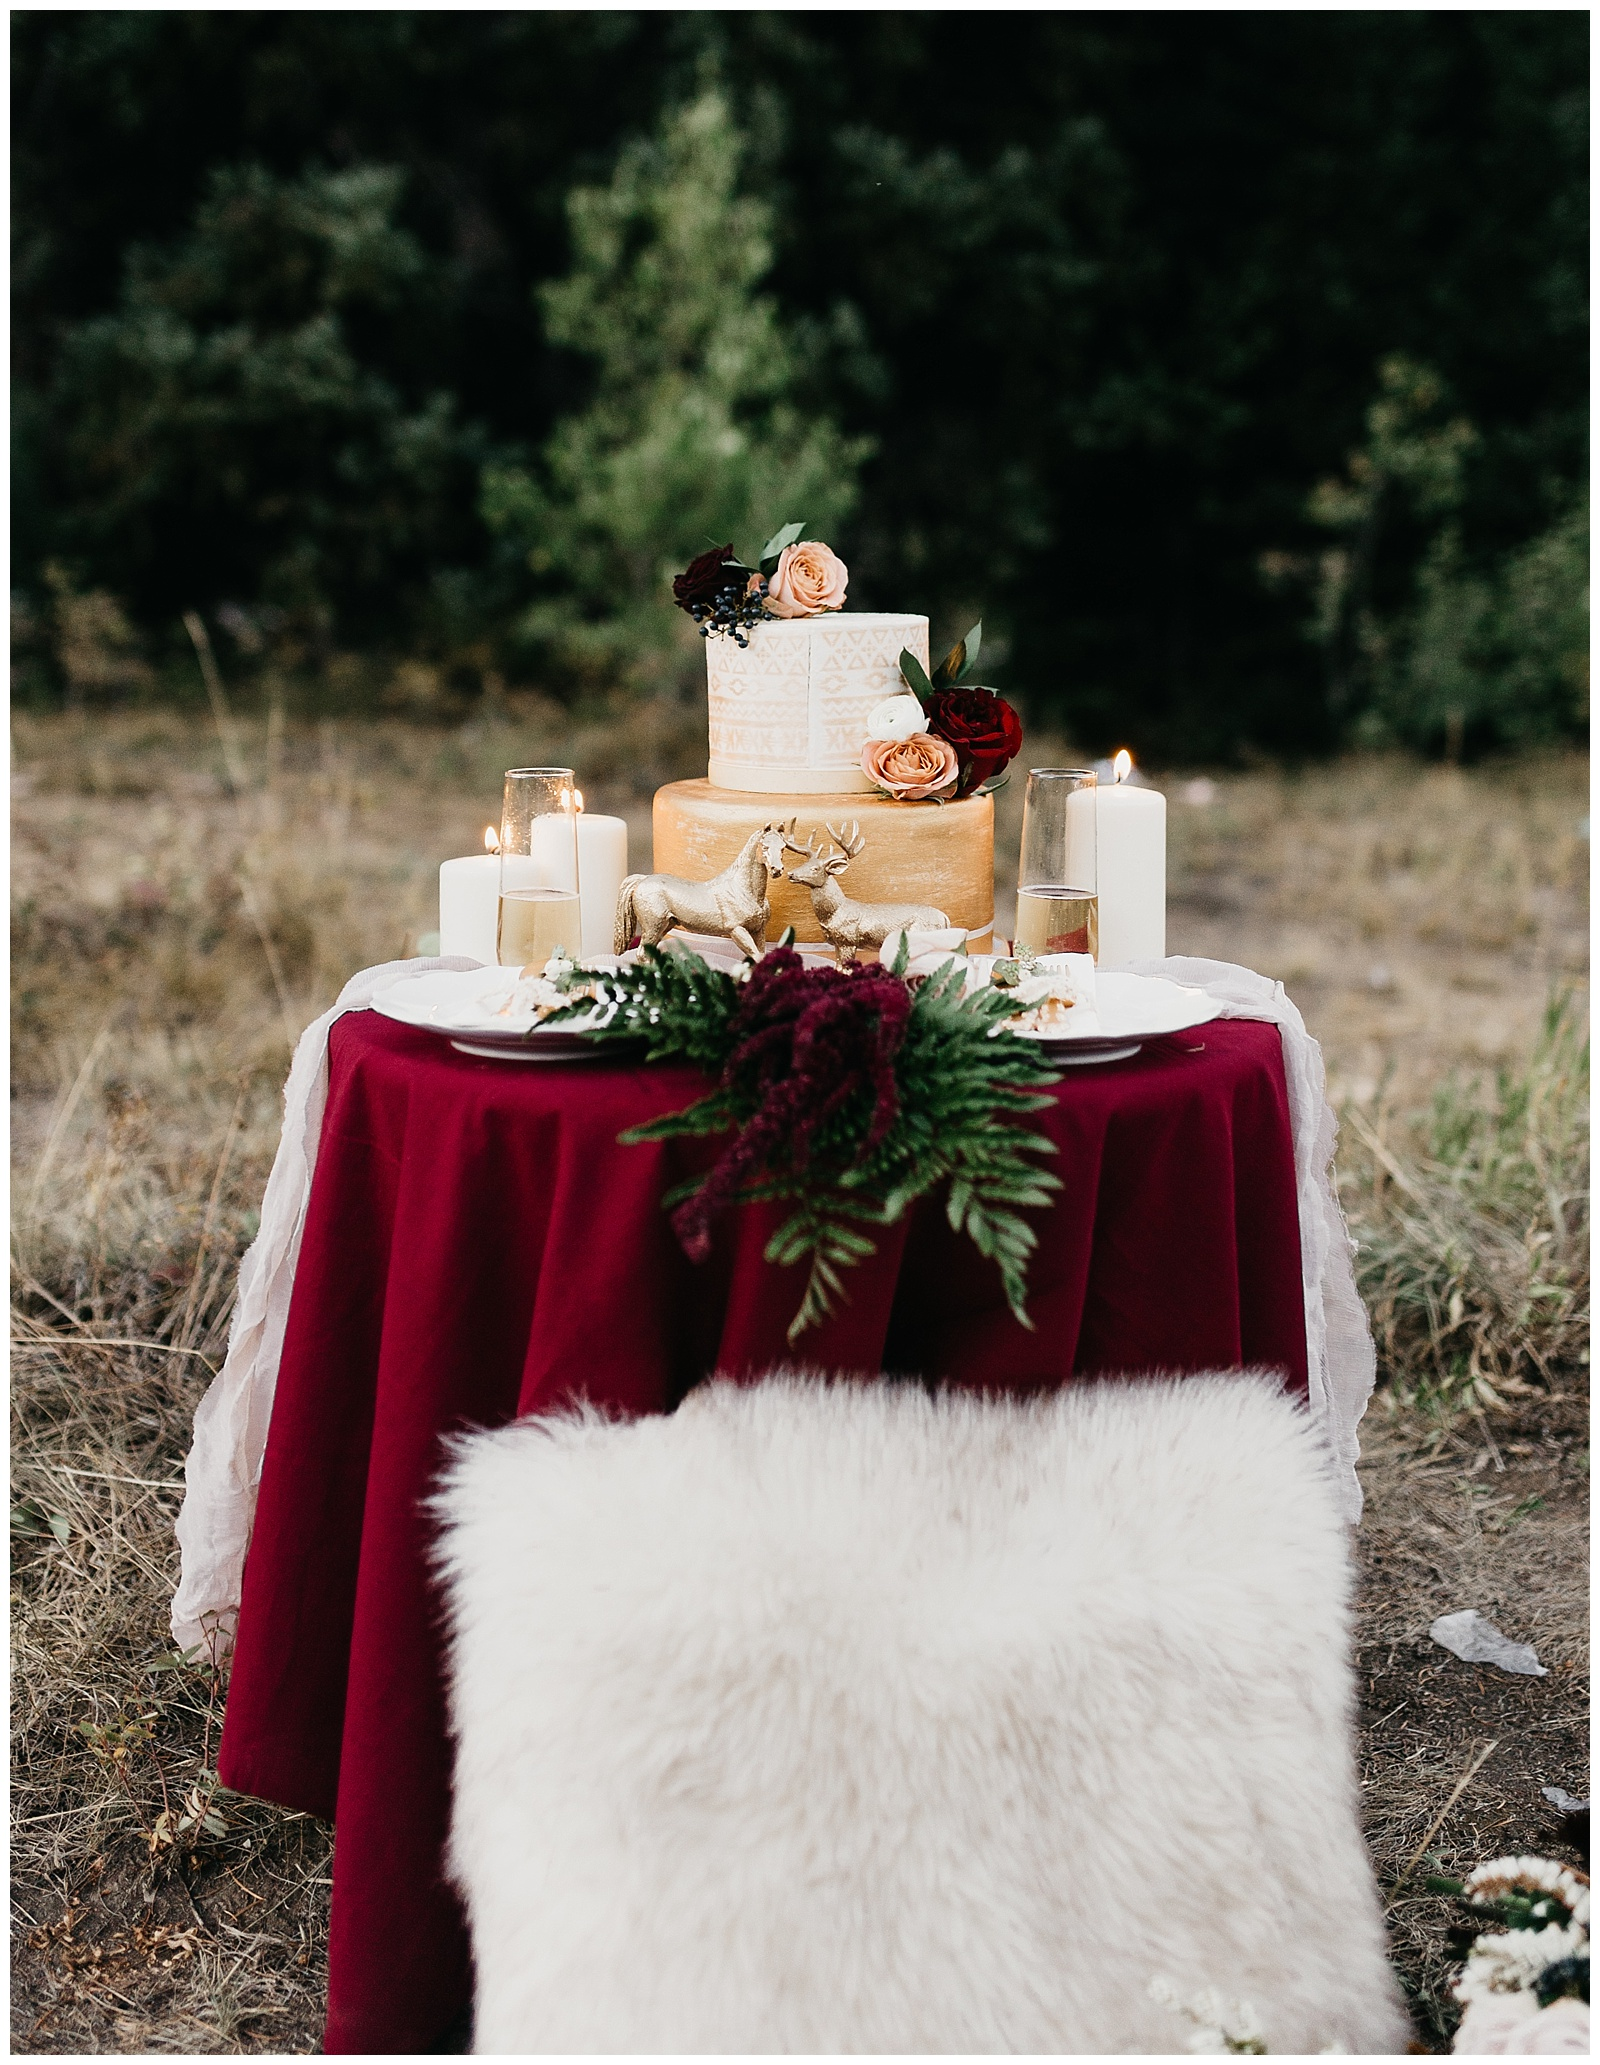 Bohemian table setting with Harry Potter details